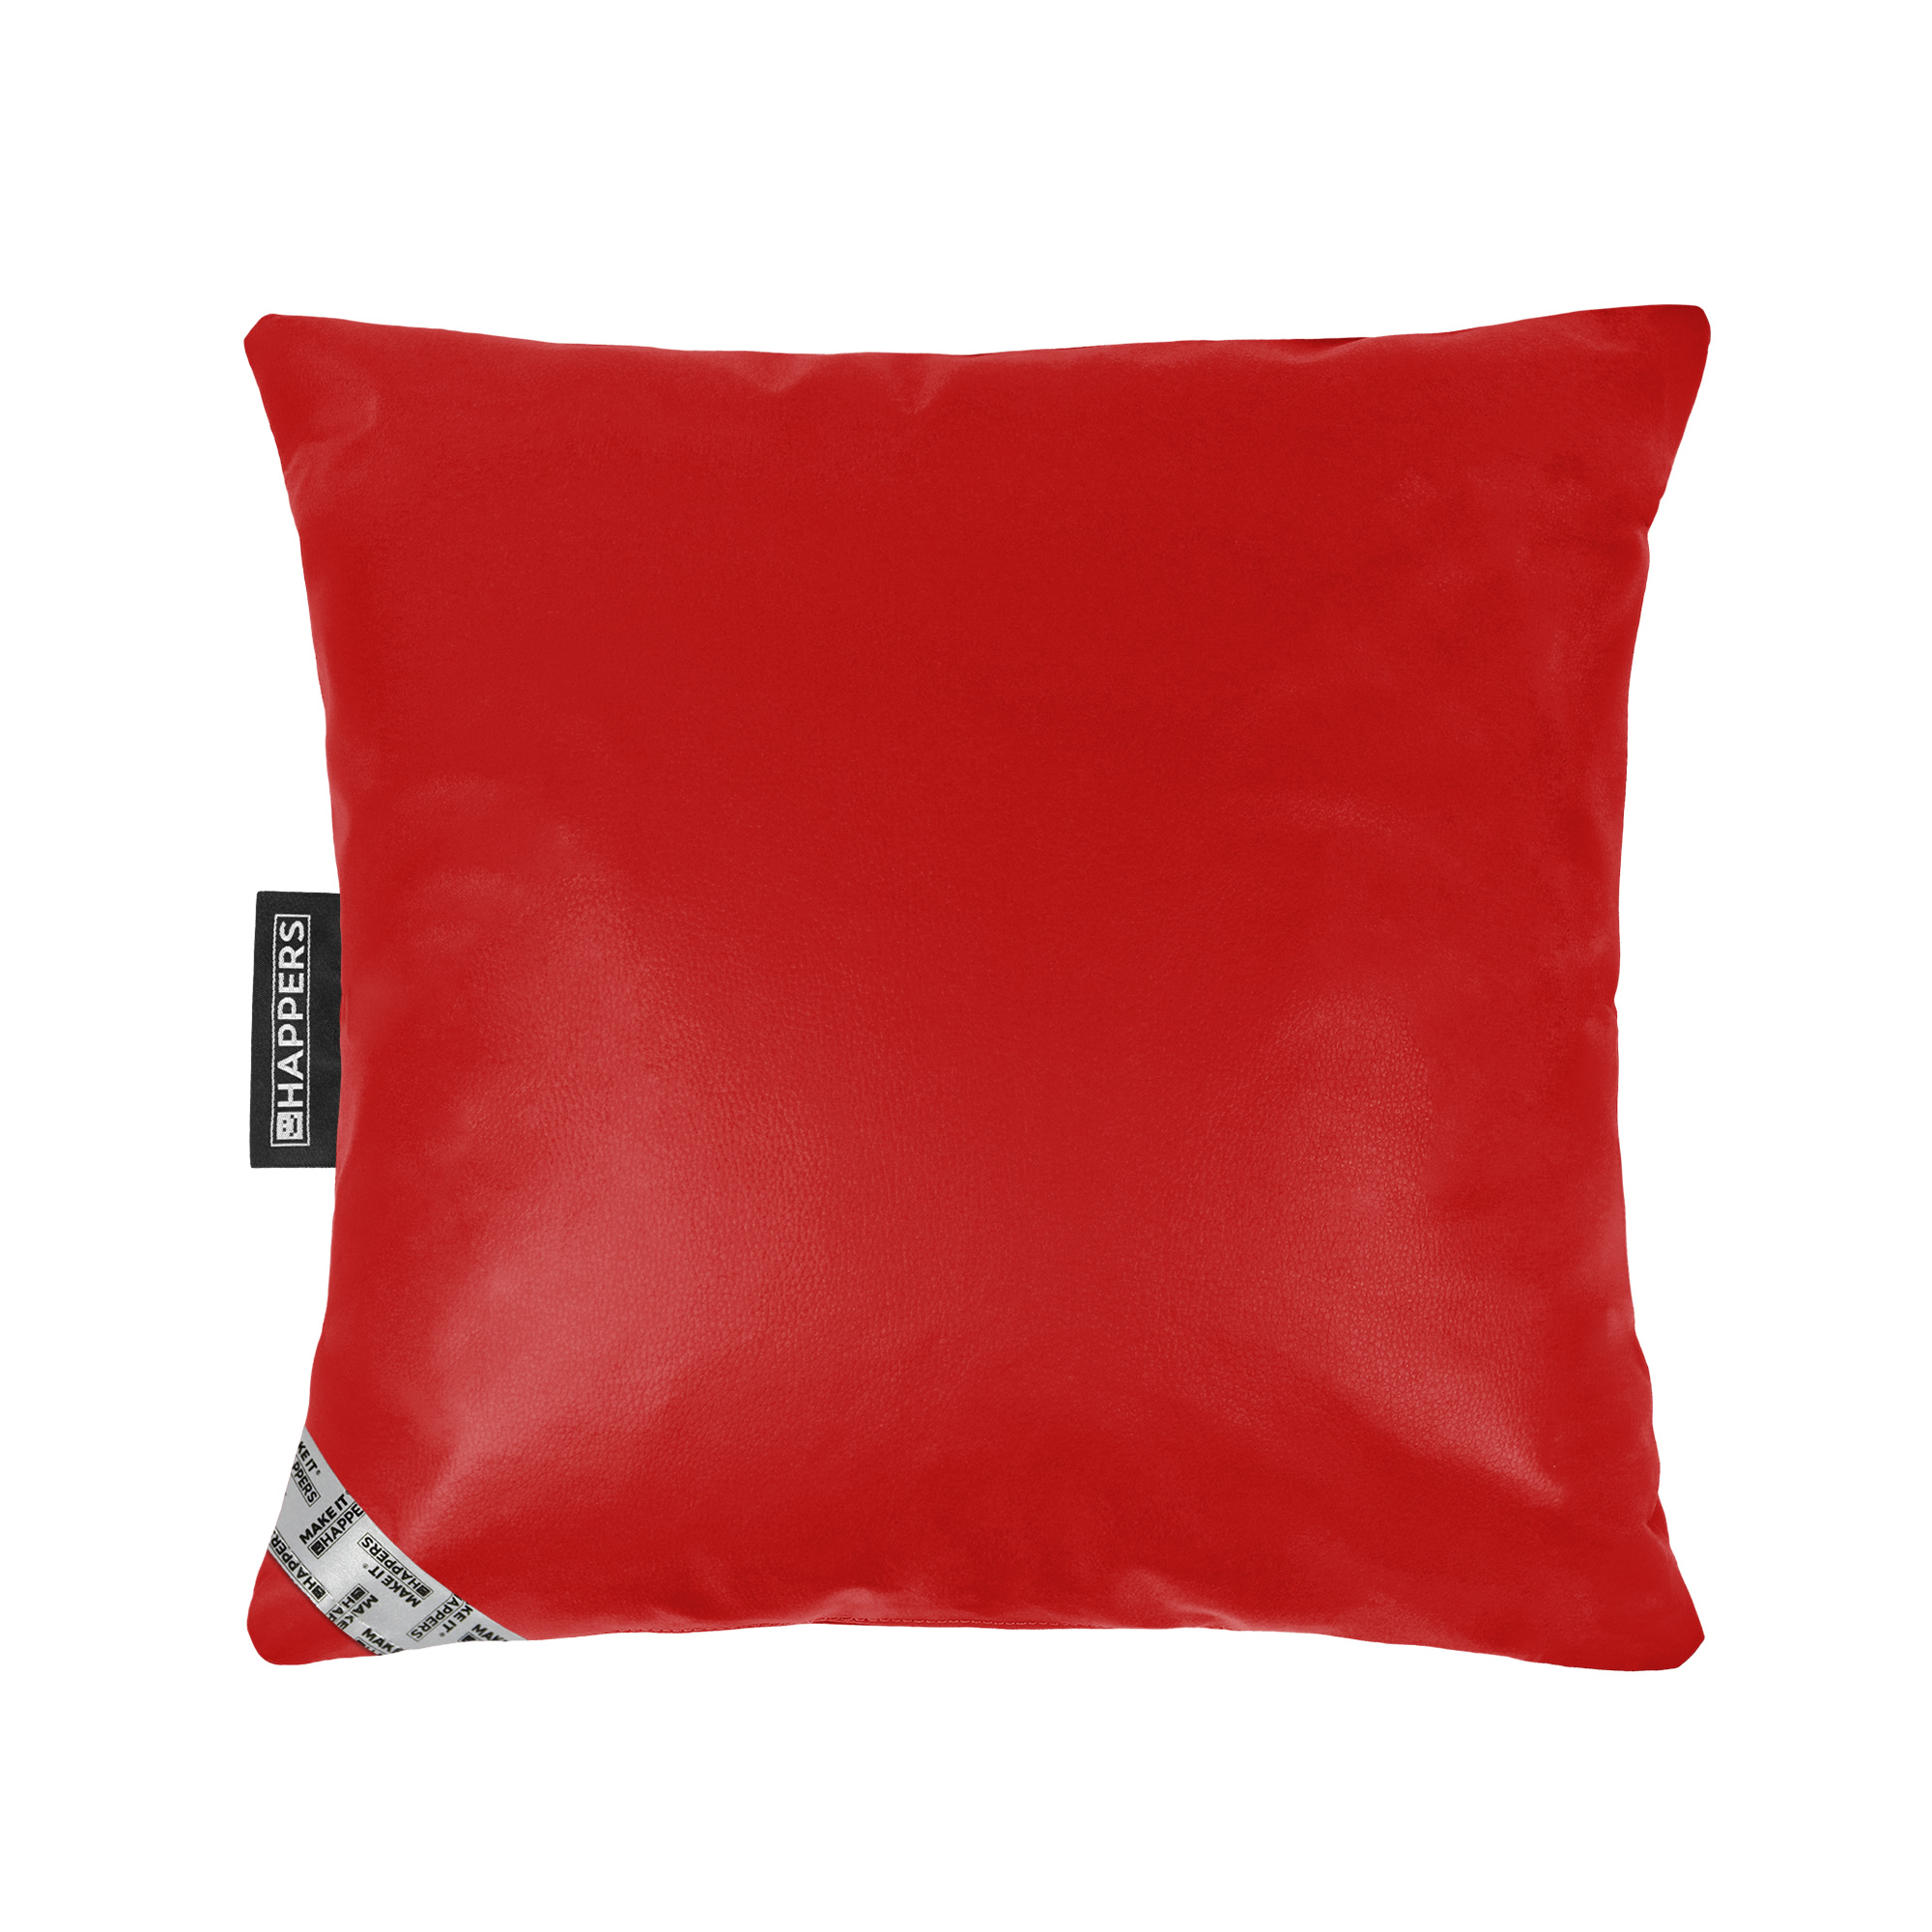 Cojín 45x45 Polipiel Indoor Rojo Happers | Happers.es